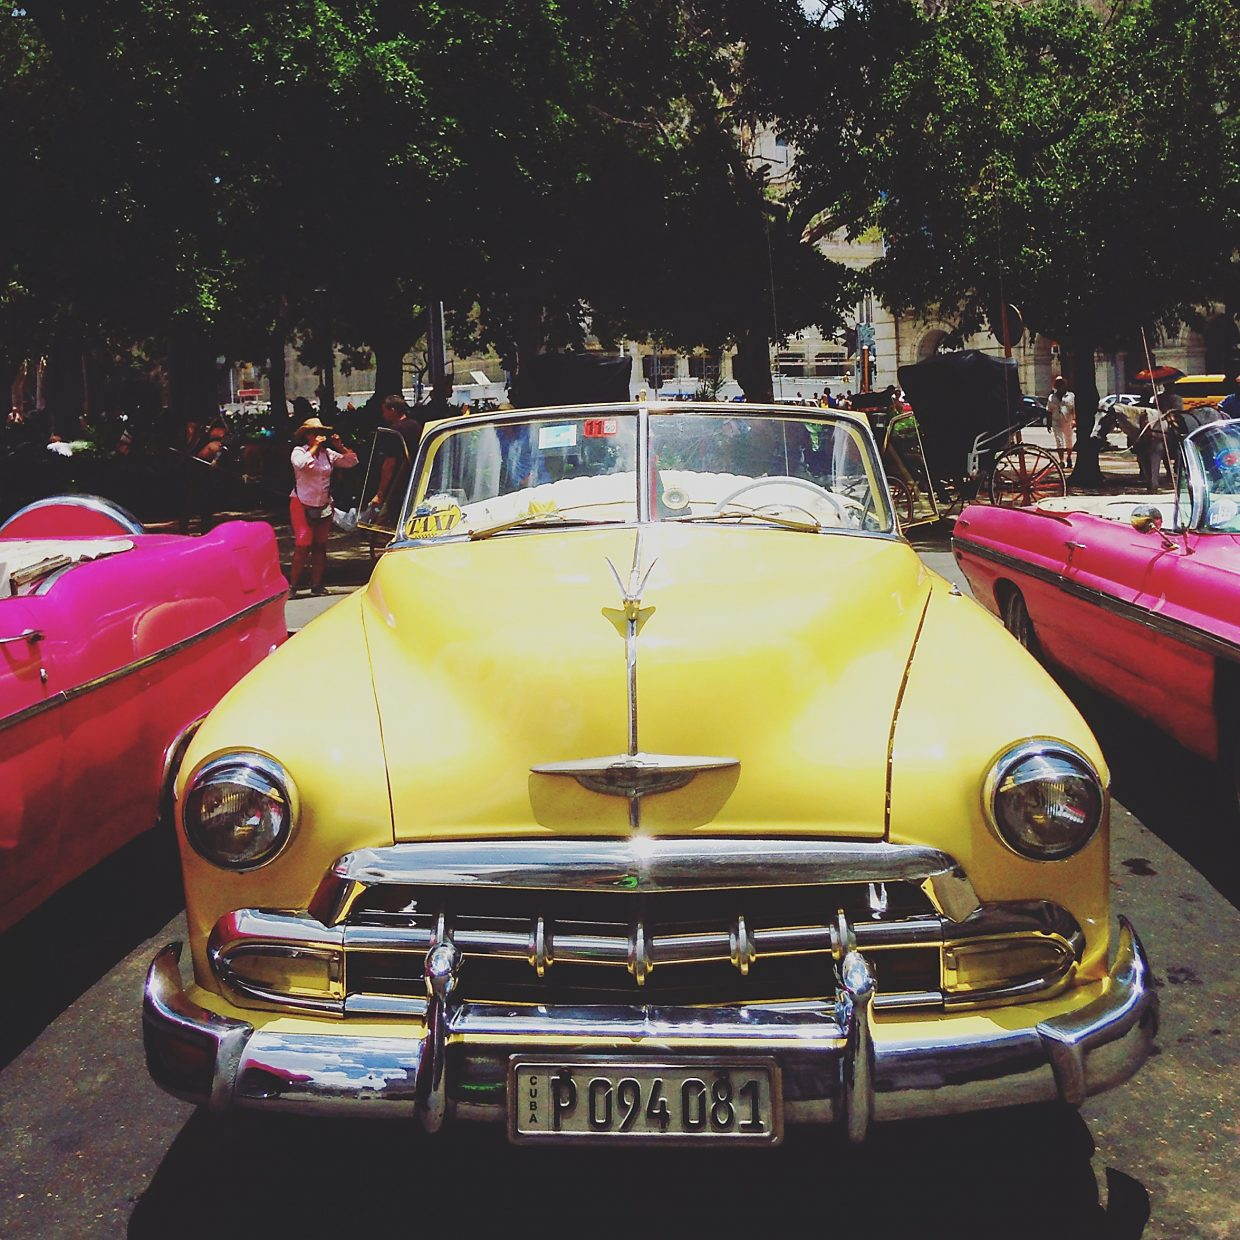 Vintage cars in Havana are one effect of the long trade embargo between the United States and Cuba.